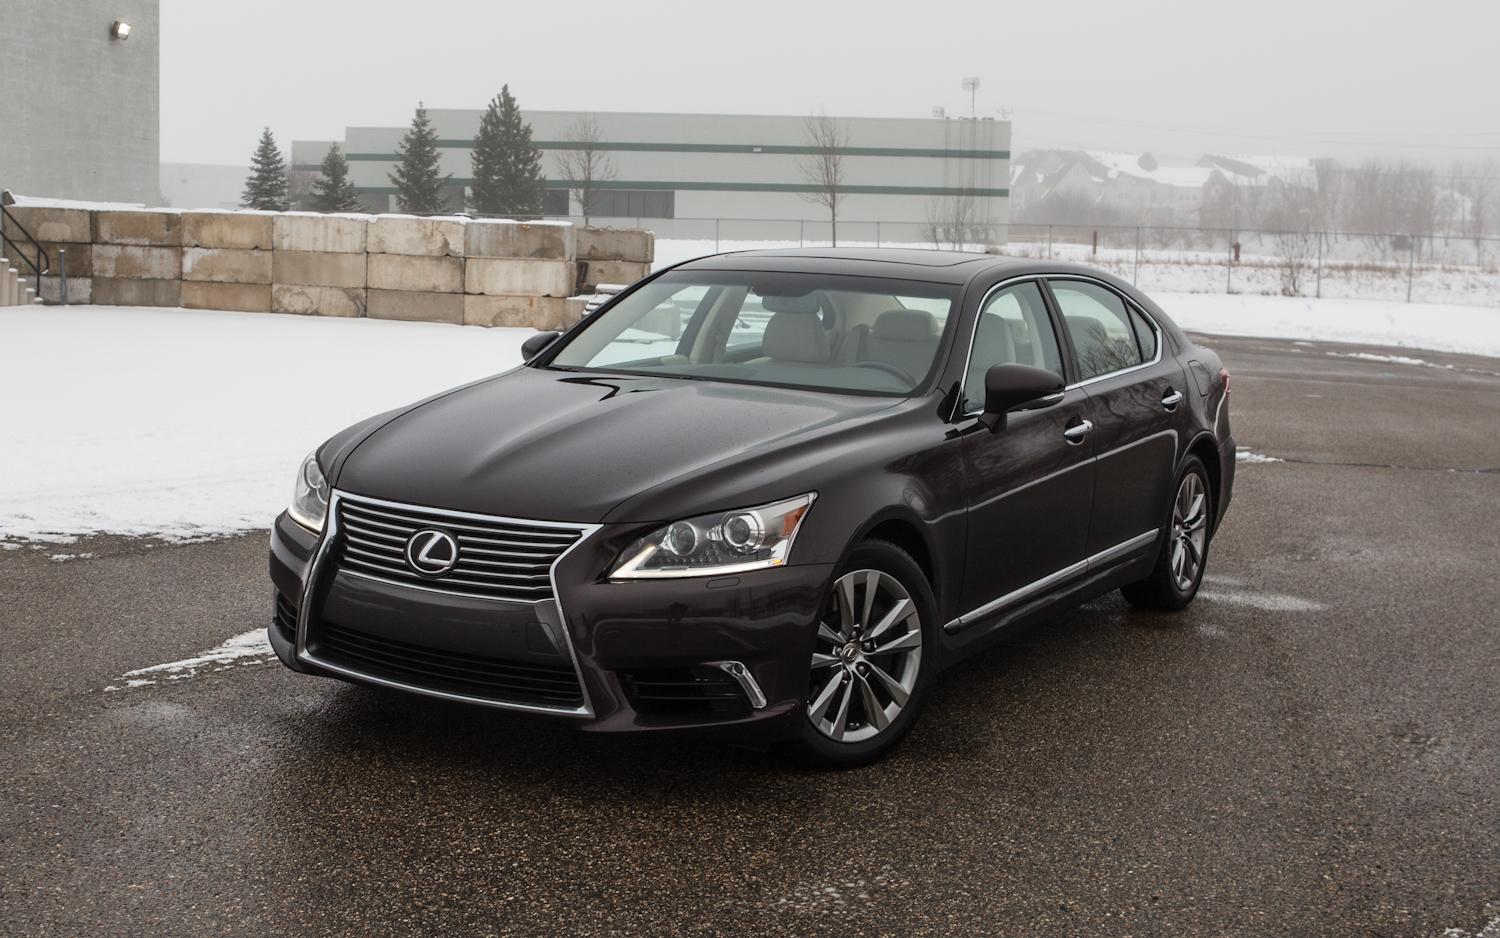 lexus ls 460 awd technical details history photos on better